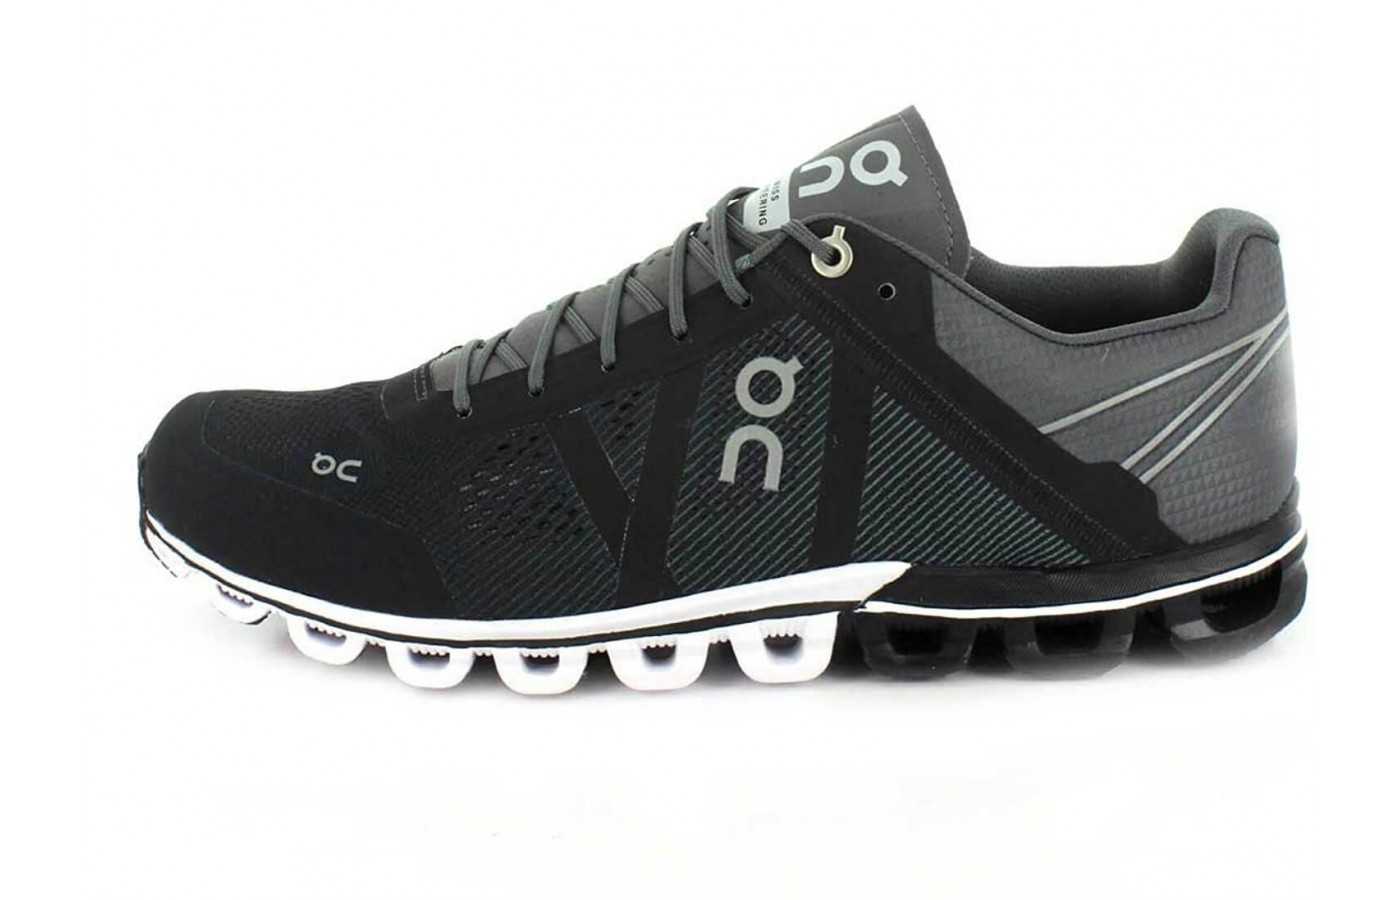 The On Cloudflow is a neutral running shoe